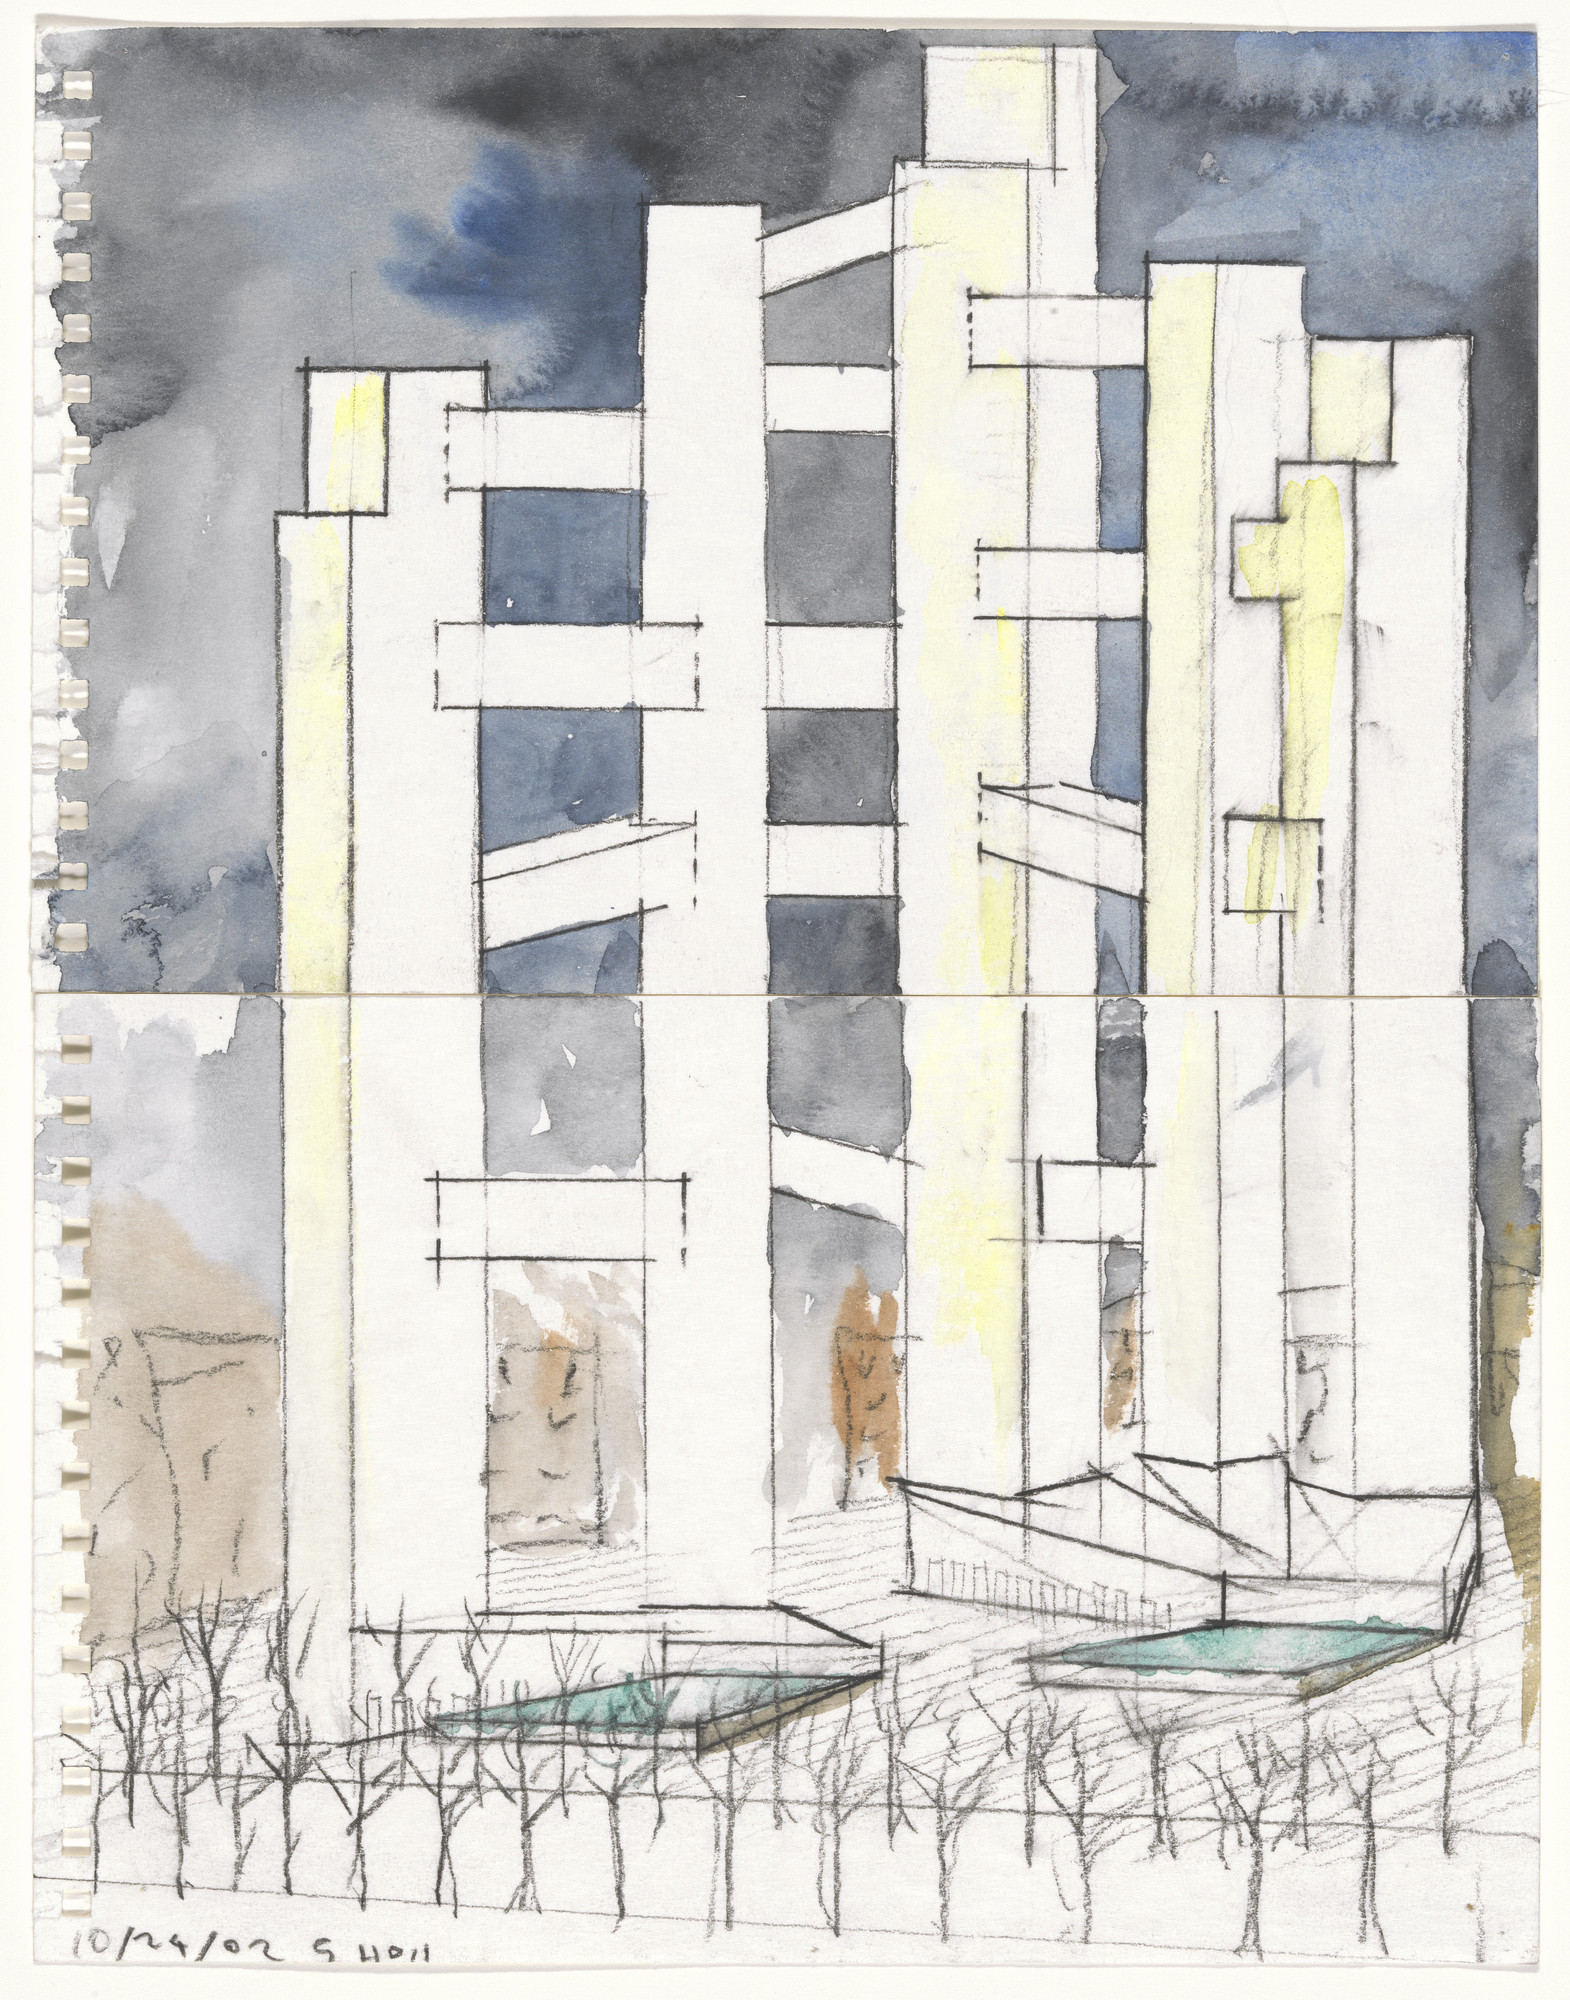 Steven Holl. World Trade Center Project, New York, NY (Perspective). 2002